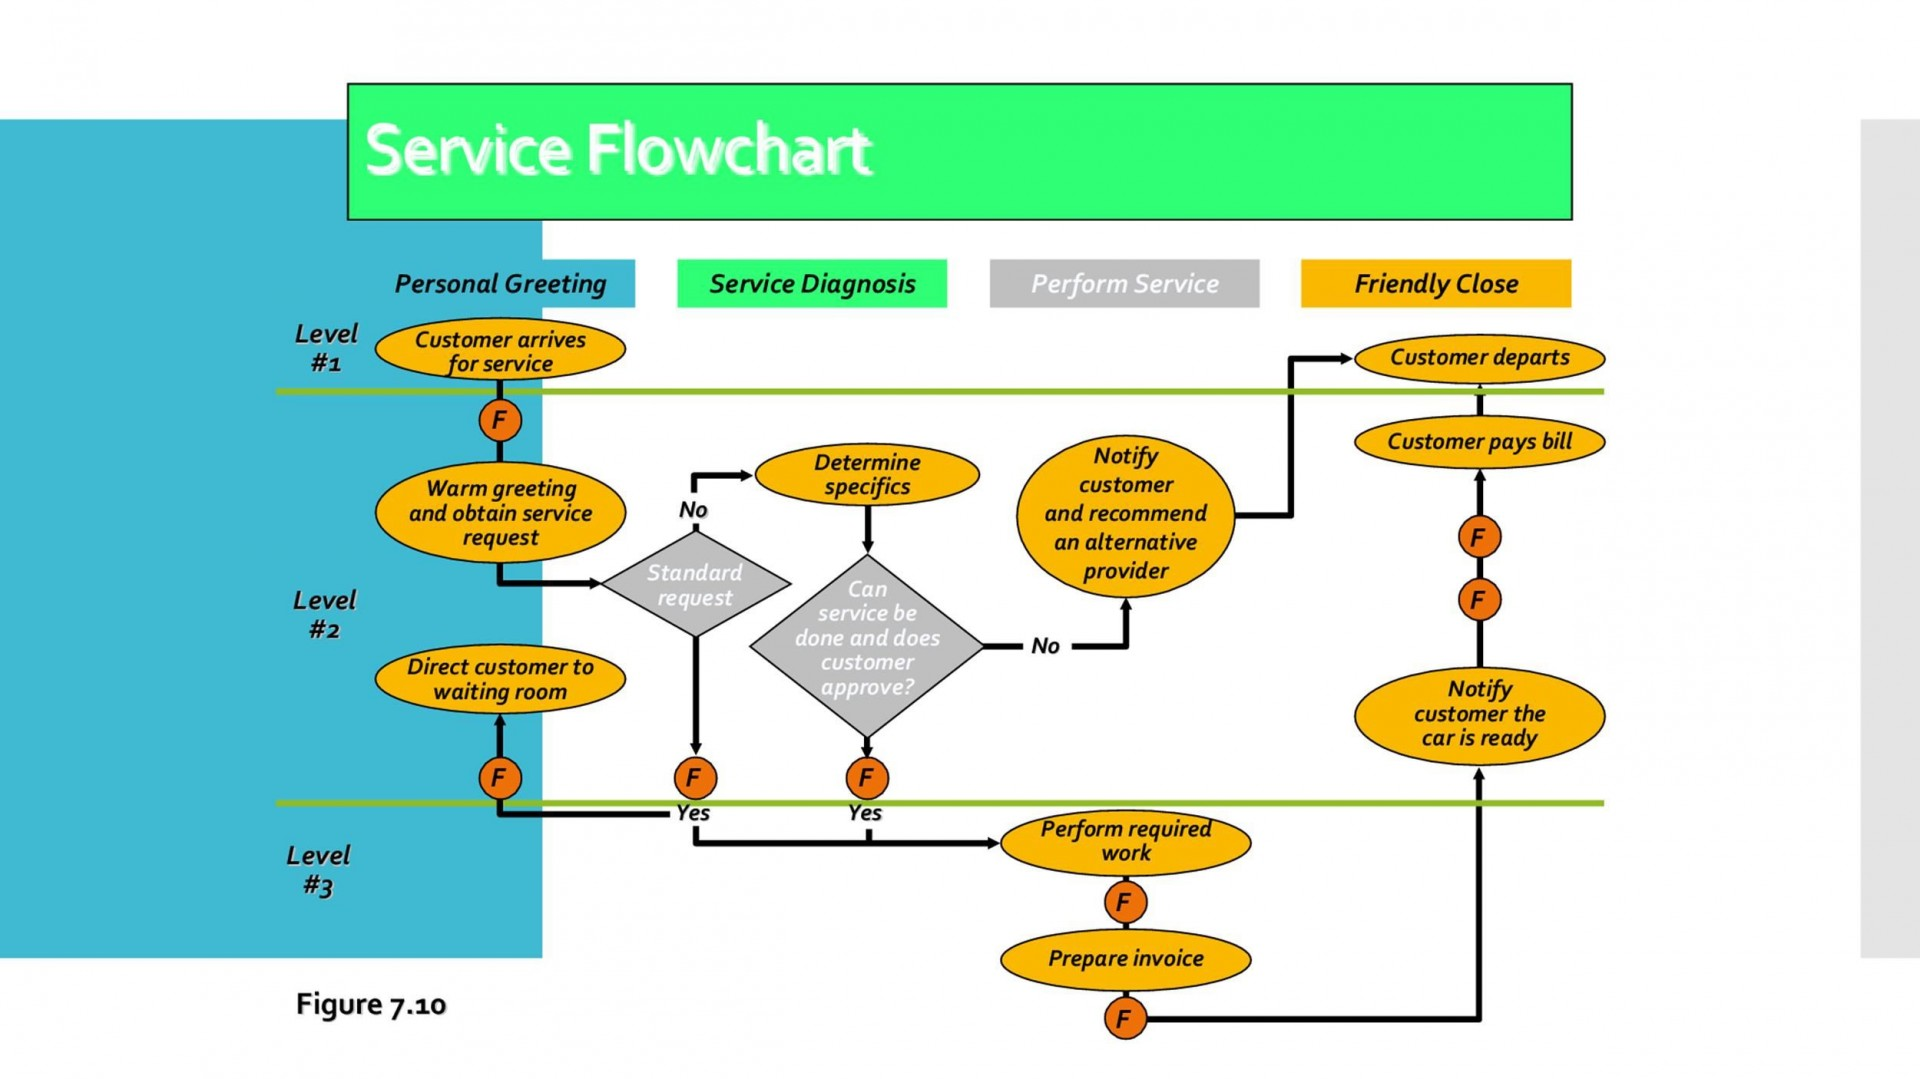 008 Marvelou Flow Chart Microsoft Excel Example  Flowchart Template1920